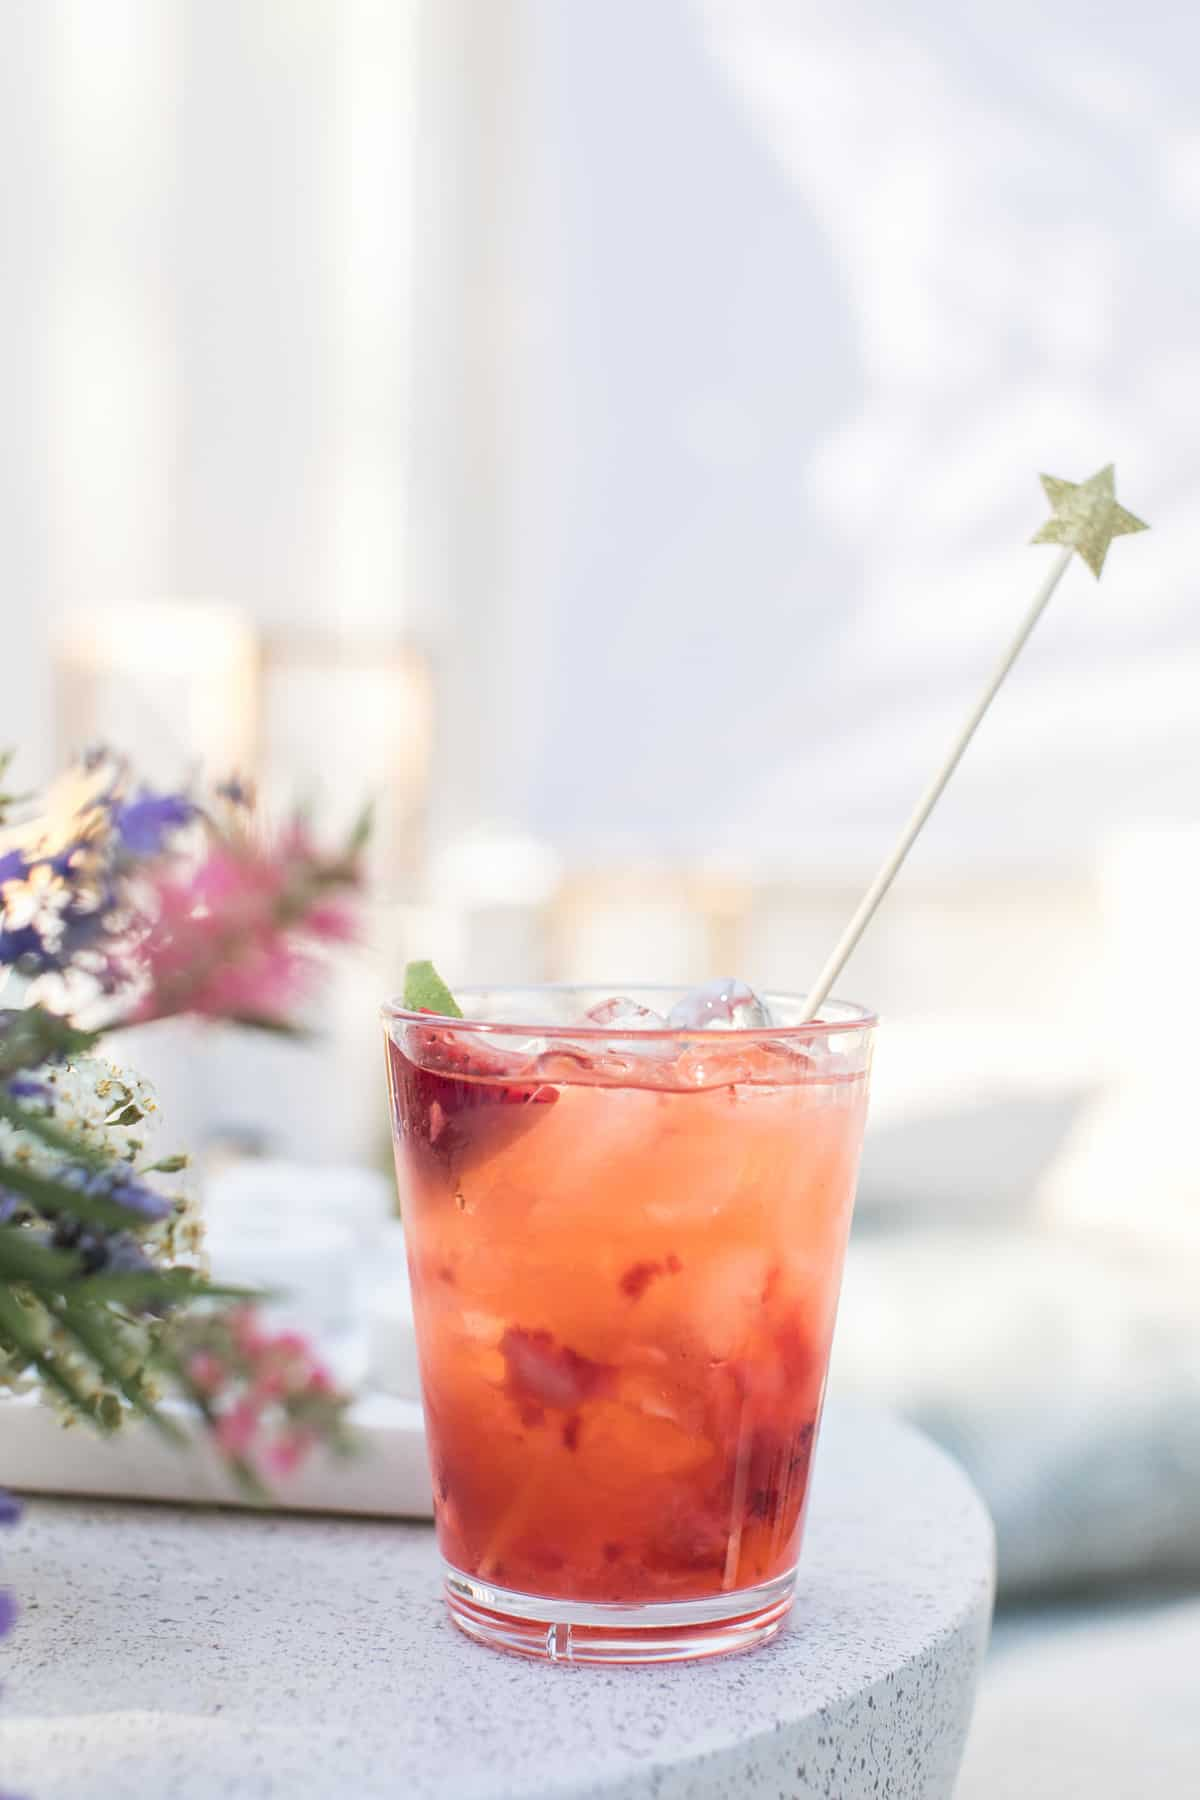 Strawberry soda with star stir stick.